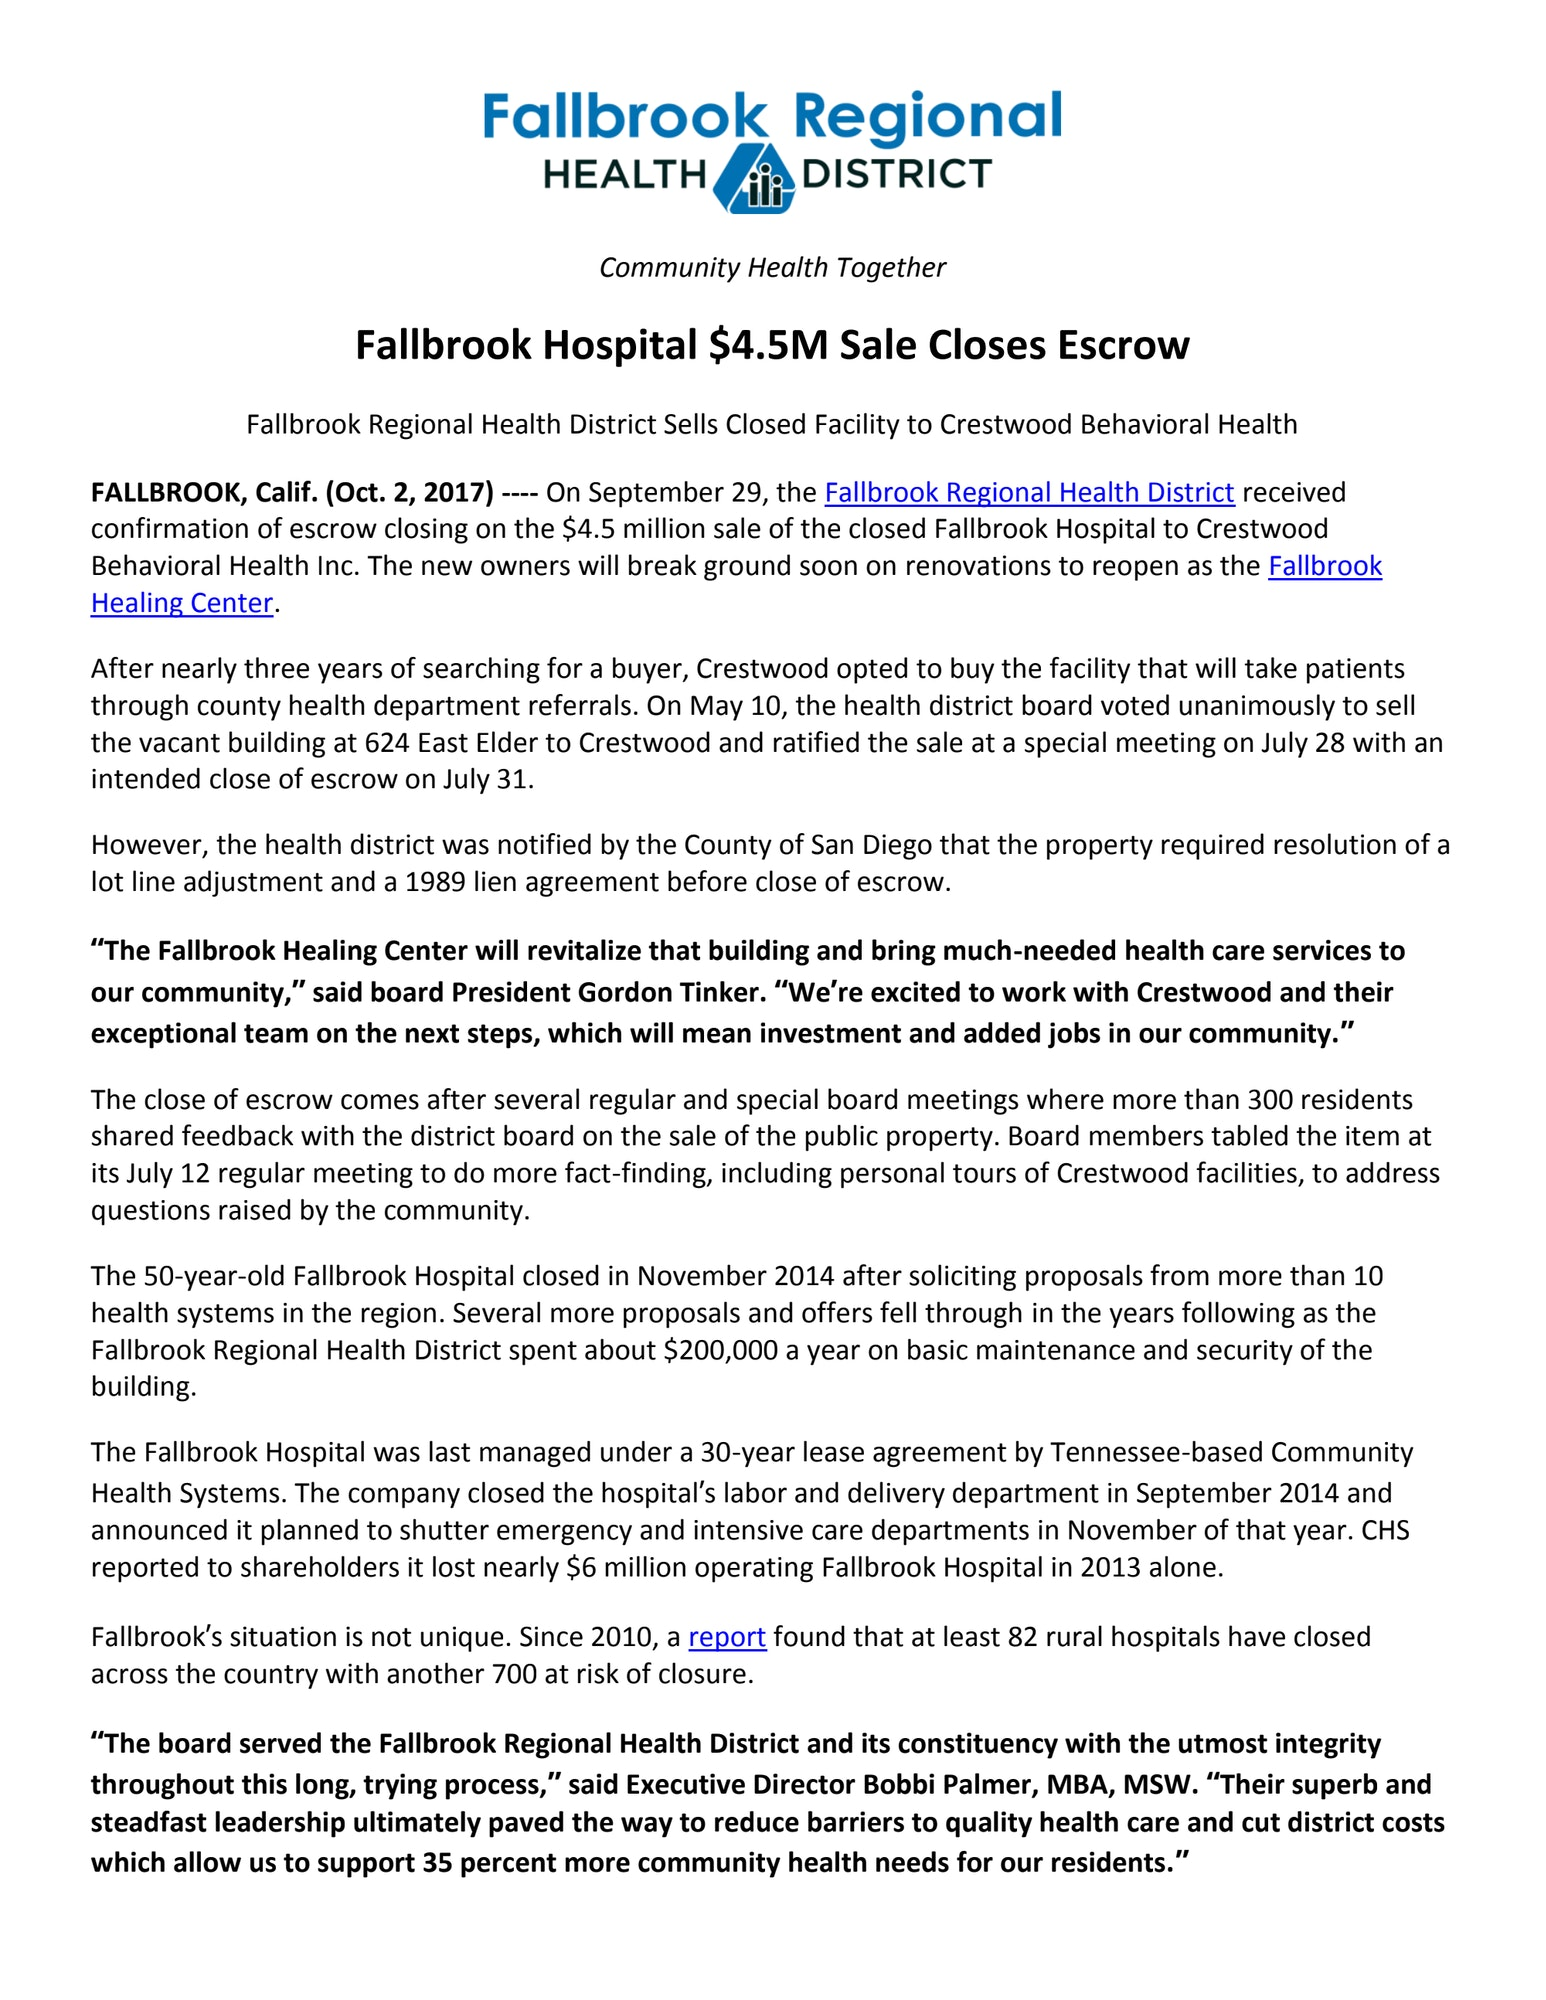 "Fallbrook Hospital $4.5M Sale Closes Escrow Fallbrook Regional Health District Sells Closed Facility to Crestwood Behavioral Health FALLBROOK, Calif. (Oct. 2, 2017) ---- On September 29, the Fallbrook Regional Health District received confirmation of escrow closing on the $4.5 million sale of the closed Fallbrook Hospital to Crestwood Behavioral Health Inc. The new owners will break ground soon on renovations to reopen as the Fallbrook Healing Center. After nearly three years of searching for a buyer, Crestwood opted to buy the facility that will take patients through county health department referrals. On May 10, the health district board voted unanimously to sell the vacant building at 624 East Elder to Crestwood and ratified the sale at a special meeting on July 28 with an intended close of escrow on July 31. However, the health district was notified by the County of San Diego that the property required resolution of a lot line adjustment and a 1989 lien agreement before close of escrow.  ""The Fallbrook Healing Center will revitalize that building and bring much-needed health care services to our community,"" said board President Gordon Tinker. ""We're excited to work with Crestwood and their exceptional team on the next steps, which will mean investment and added jobs in our community."" The close of escrow comes after several regular and special board meetings where more than 300 residents shared feedback with the district board on the sale of the public property. Board members tabled the item at its July 12 regular meeting to do more fact-finding, including personal tours of Crestwood facilities, to address questions raised by the community. The 50-year-old Fallbrook Hospital closed in November 2014 after soliciting proposals from more than 10 health systems in the region. Several more proposals and offers fell through in the years following as the Fallbrook Regional Health District spent about $200,000 a year on basic maintenance and security of the building.  The Fallbrook Hospital was last managed under a 30-year lease agreement by Tennessee-based Community Health Systems. The company closed the hospital's labor and delivery department in September 2014 and announced it planned to shutter emergency and intensive care departments in November of that year. CHS reported to shareholders it lost nearly $6 million operating Fallbrook Hospital in 2013 alone. Fallbrook's situation is not unique. Since 2010, a report found that at least 82 rural hospitals have closed across the country with another 700 at risk of closure.  ""The board served the Fallbrook Regional Health District and its constituency with the utmost integrity throughout this long, trying process,"" said Executive Director Bobbi Palmer, MBA, MSW. ""Their superb and steadfast leadership ultimately paved the way to reduce barriers to quality health care and cut district costs which allow us to support 35 percent more community health needs for our residents."""